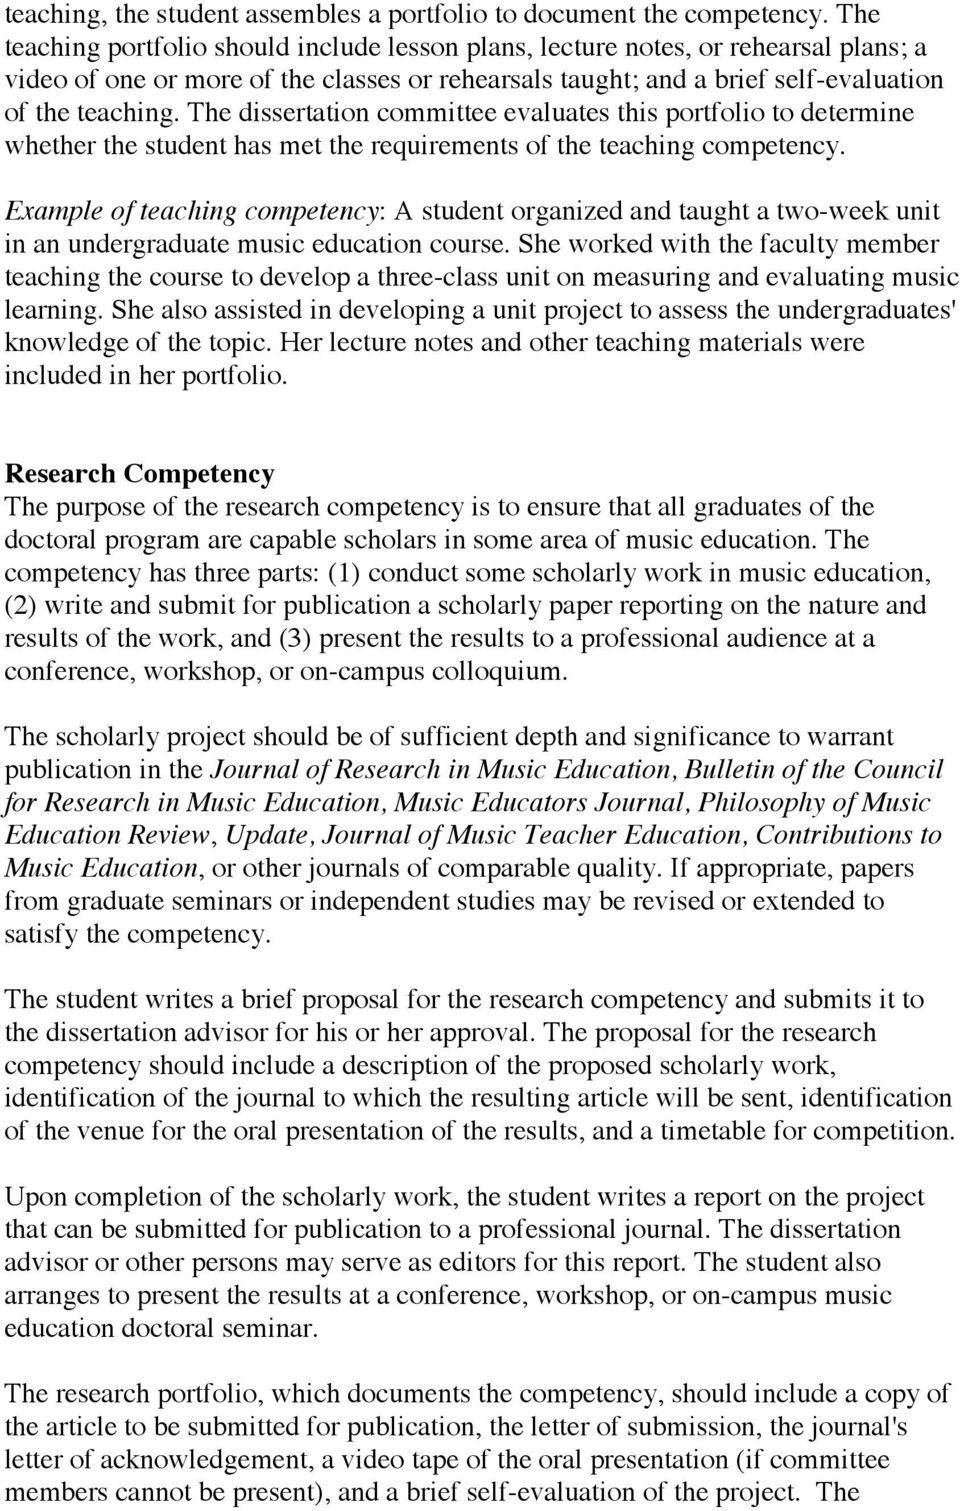 The dissertation committee evaluates this portfolio to determine whether the student has met the requirements of the teaching competency.